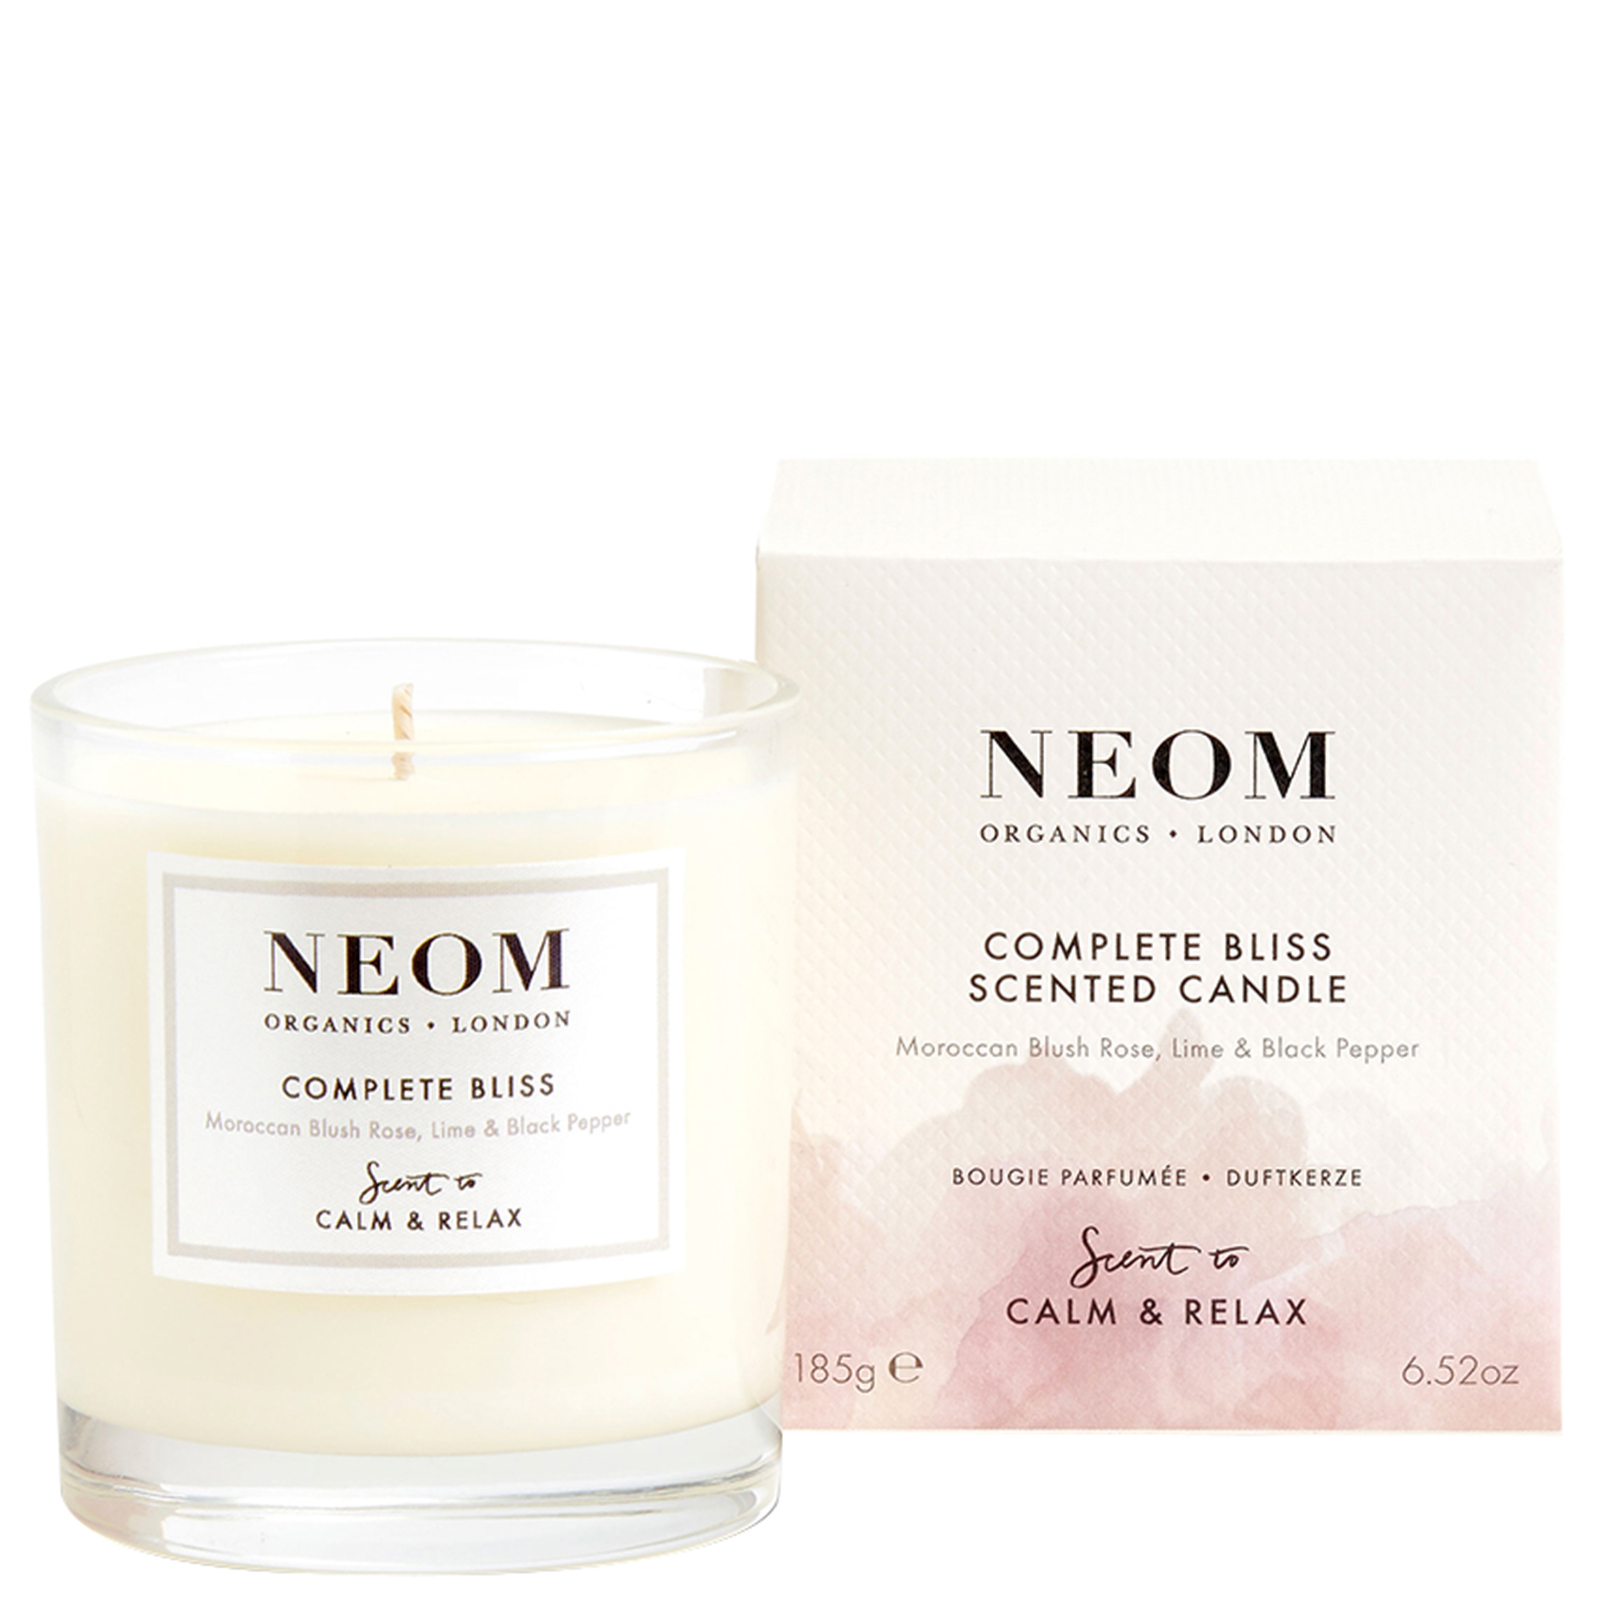 Neom Organics London Scent To Calm & Relax Complete Bliss Scented Candle (1 Wick) 185g